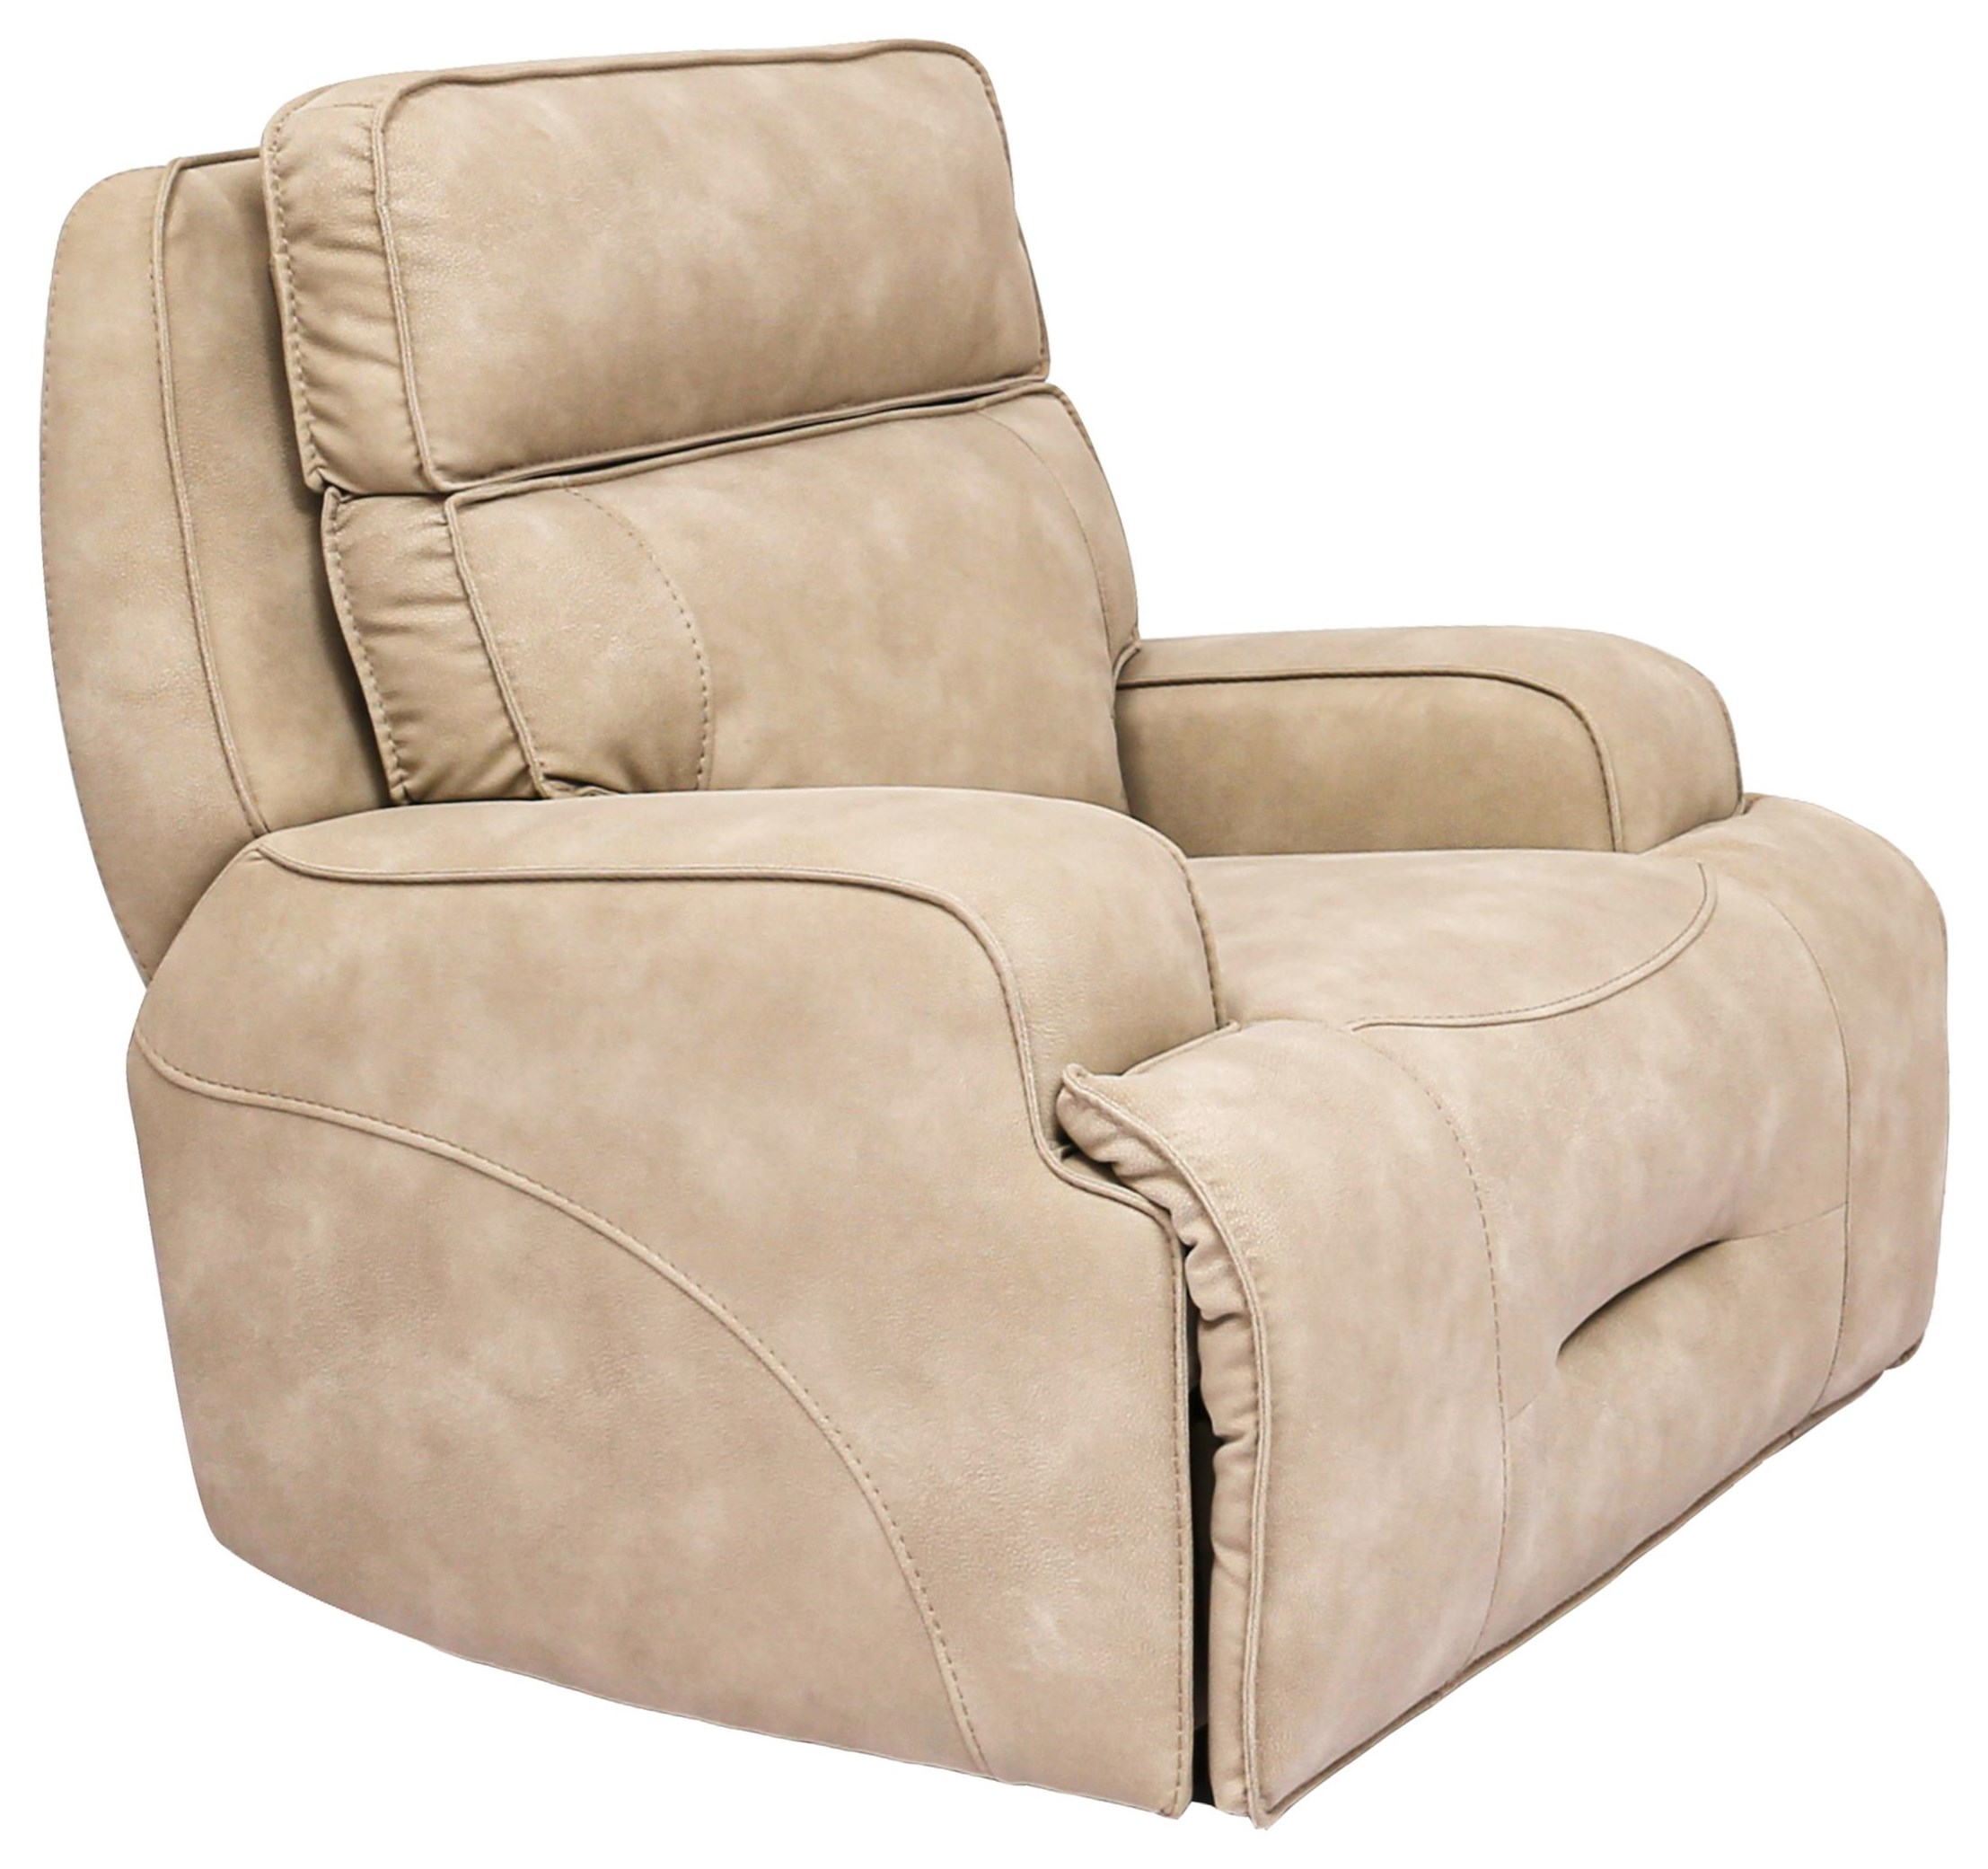 90029 Power Recliner with Power Headrest by Cheers at Beck's Furniture